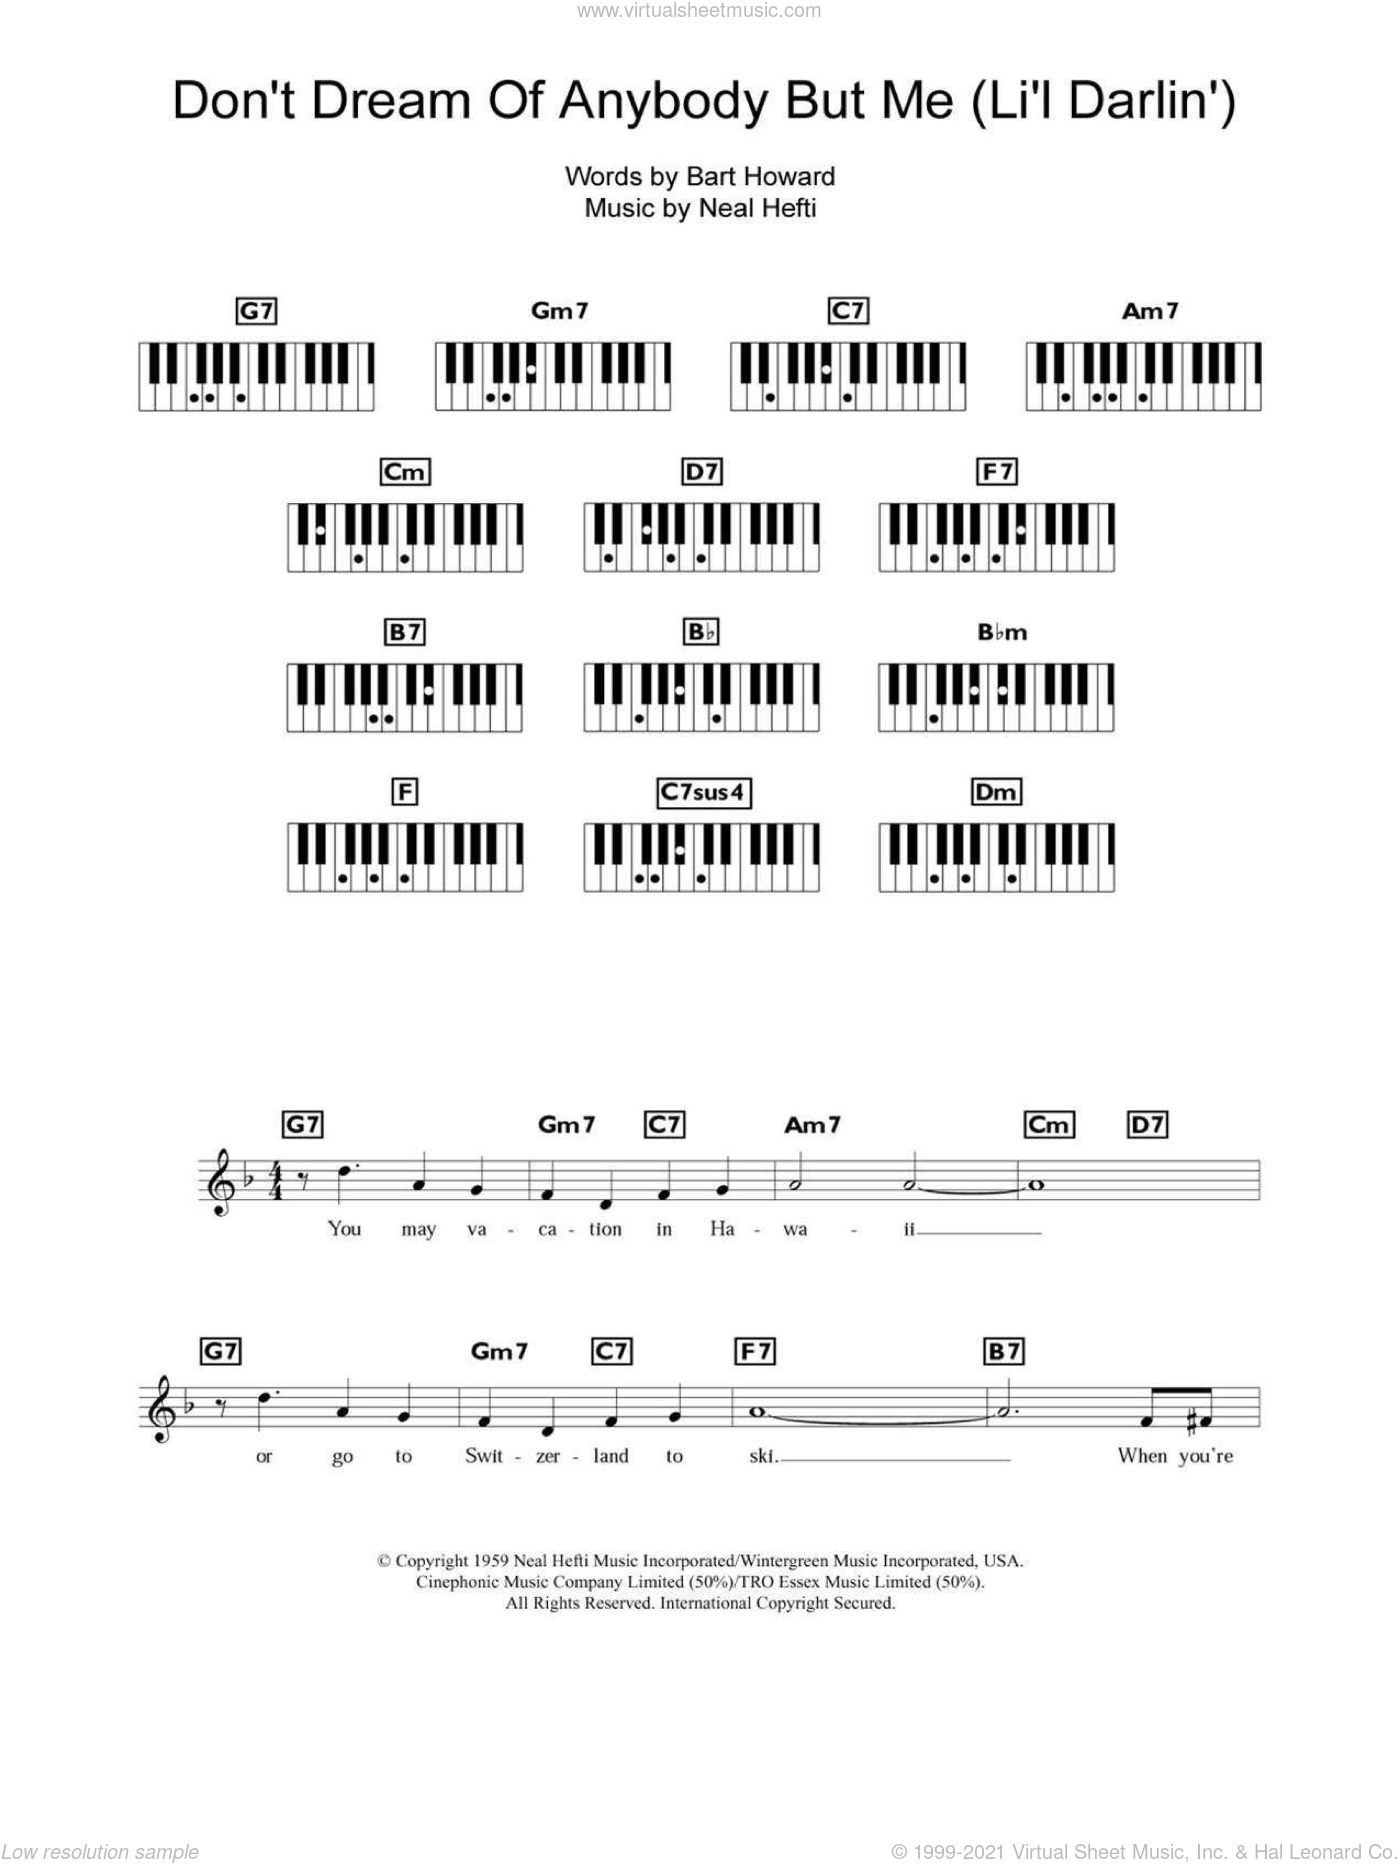 Don't Dream Of Anybody But Me (Li'l Darlin') sheet music for piano solo (chords, lyrics, melody) by Bobby Darin, Bart Howard and Neal Hefti, intermediate piano (chords, lyrics, melody). Score Image Preview.